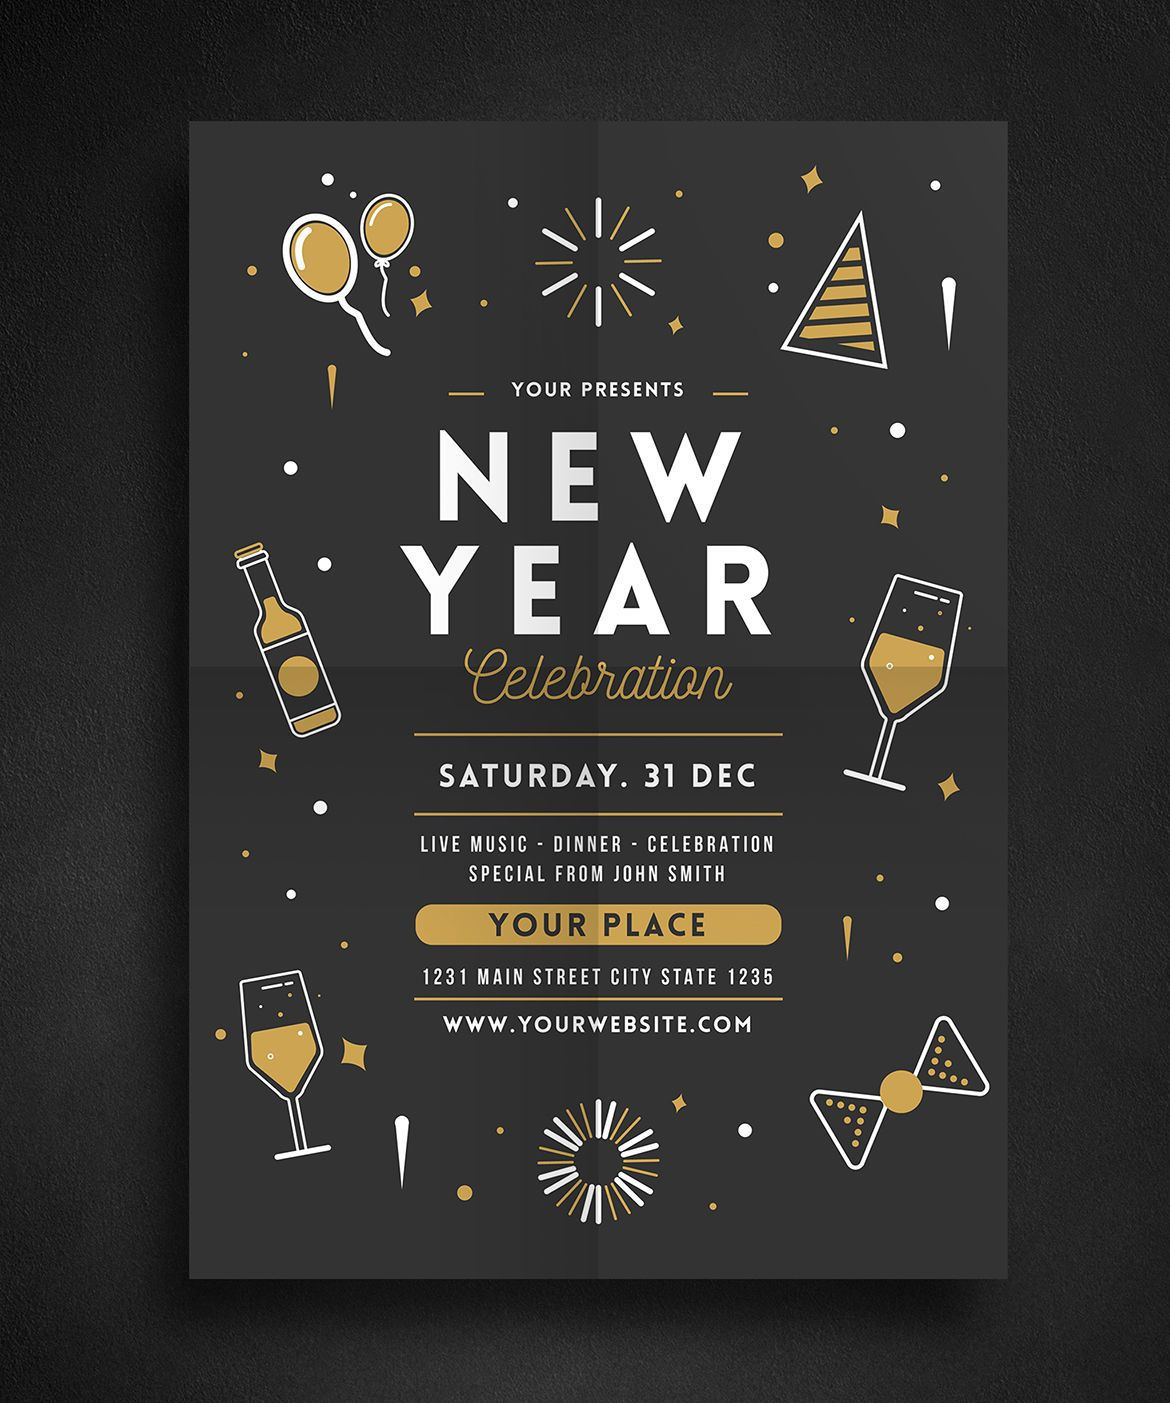 New Year Celebration Flyer Template Ai Psd  Flyer Templates